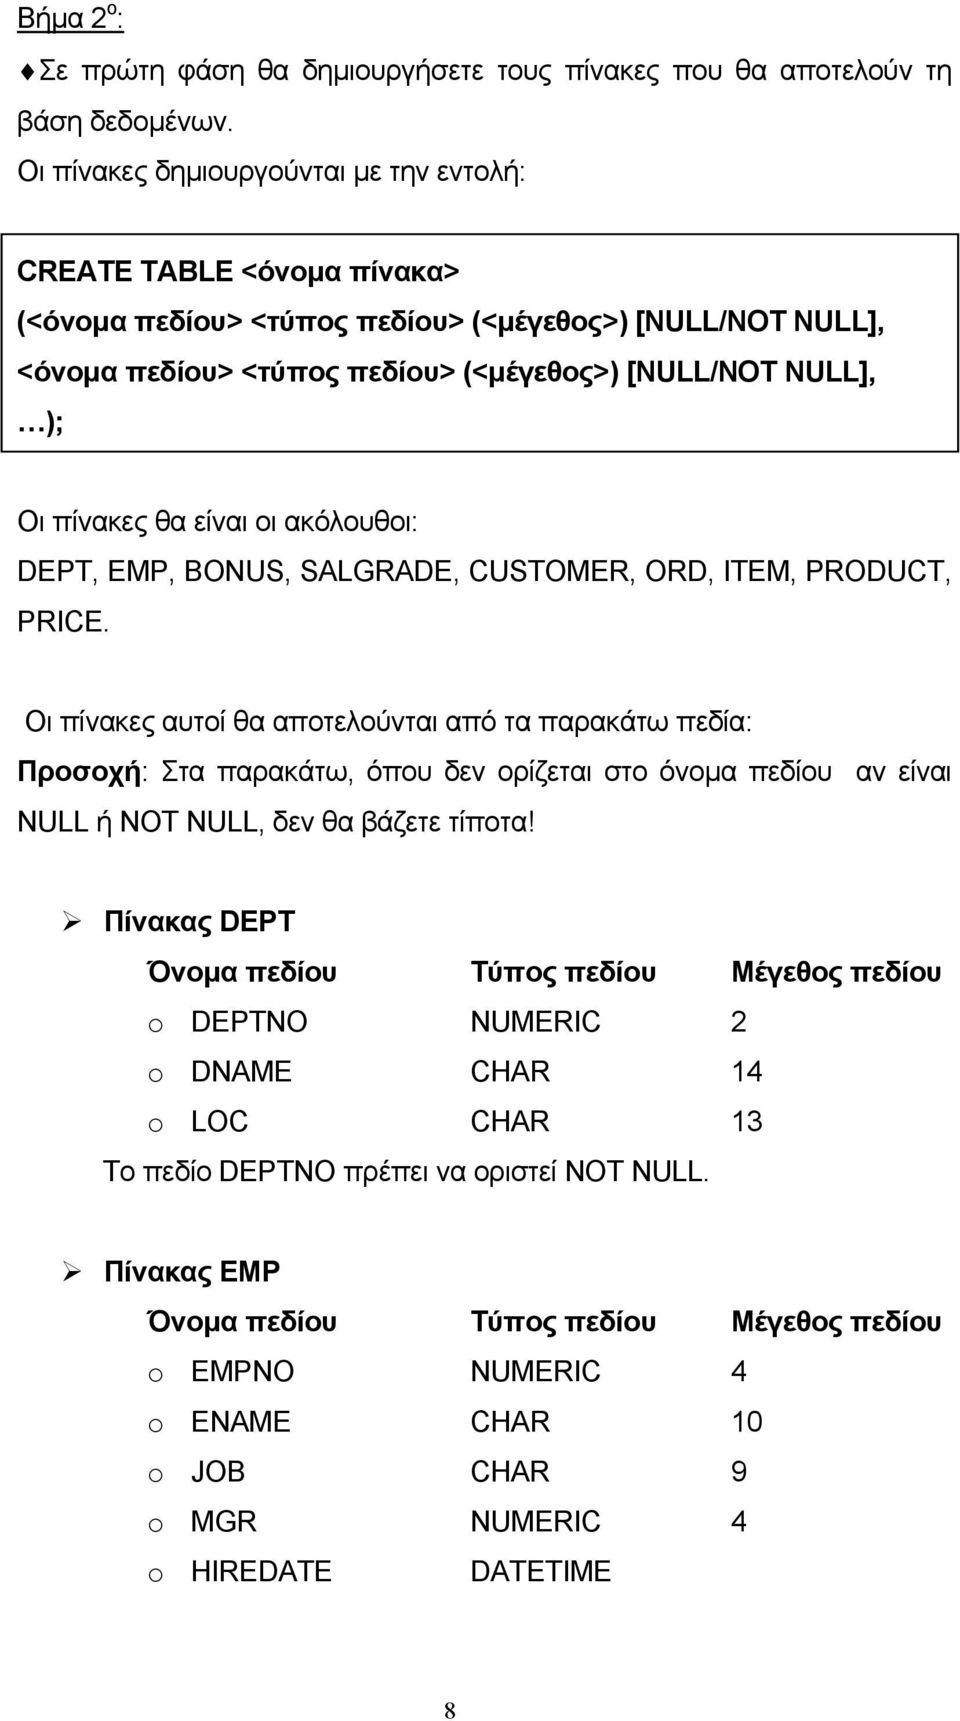 πίνακες θα είναι οι ακόλουθοι: DEPT, EMP, BONUS, SALGRADE, CUSTOMER, ORD, ITEM, PRODUCT, PRICE.